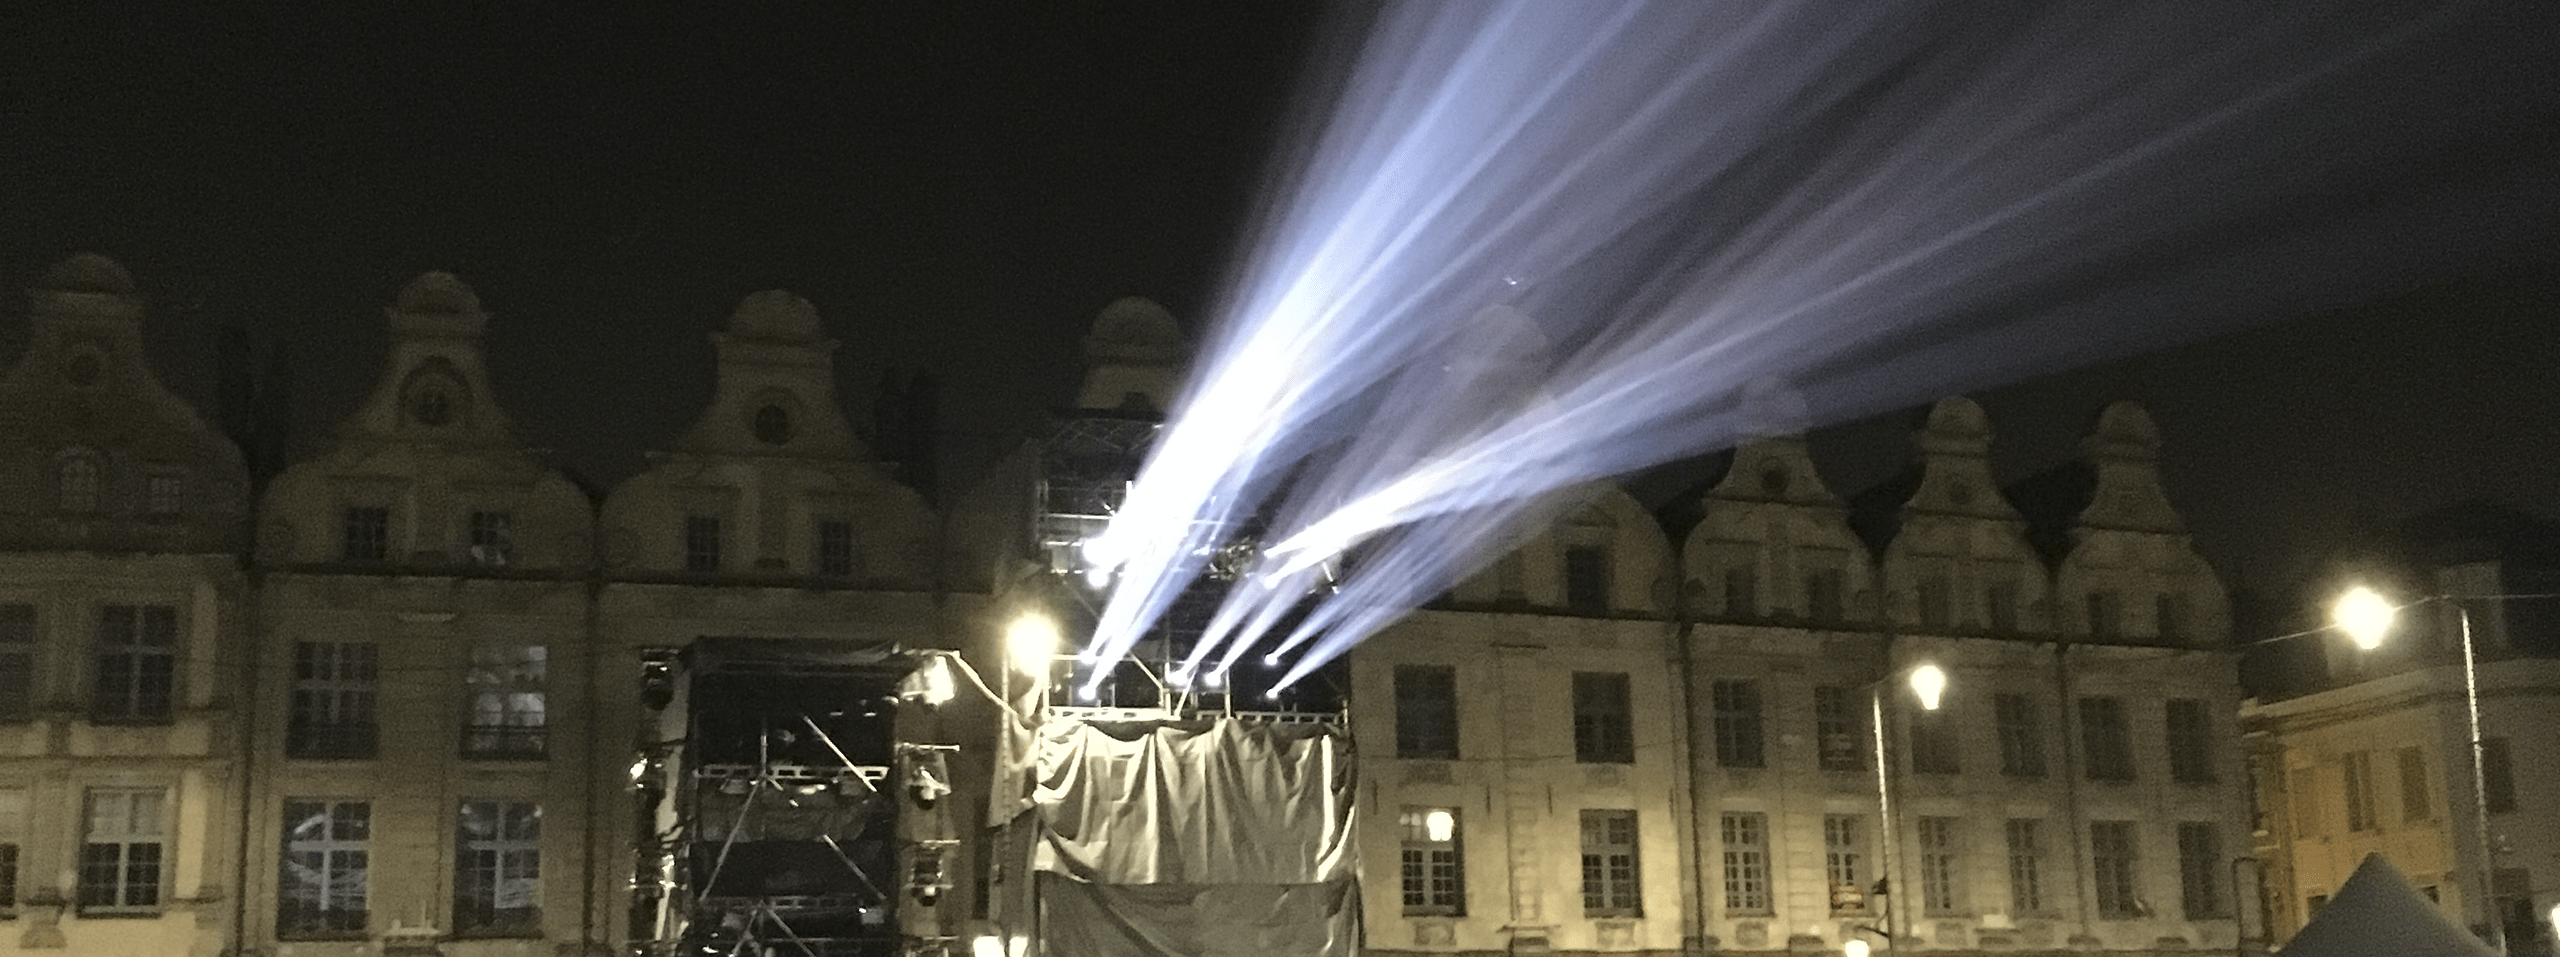 Projection tower in Arras, France